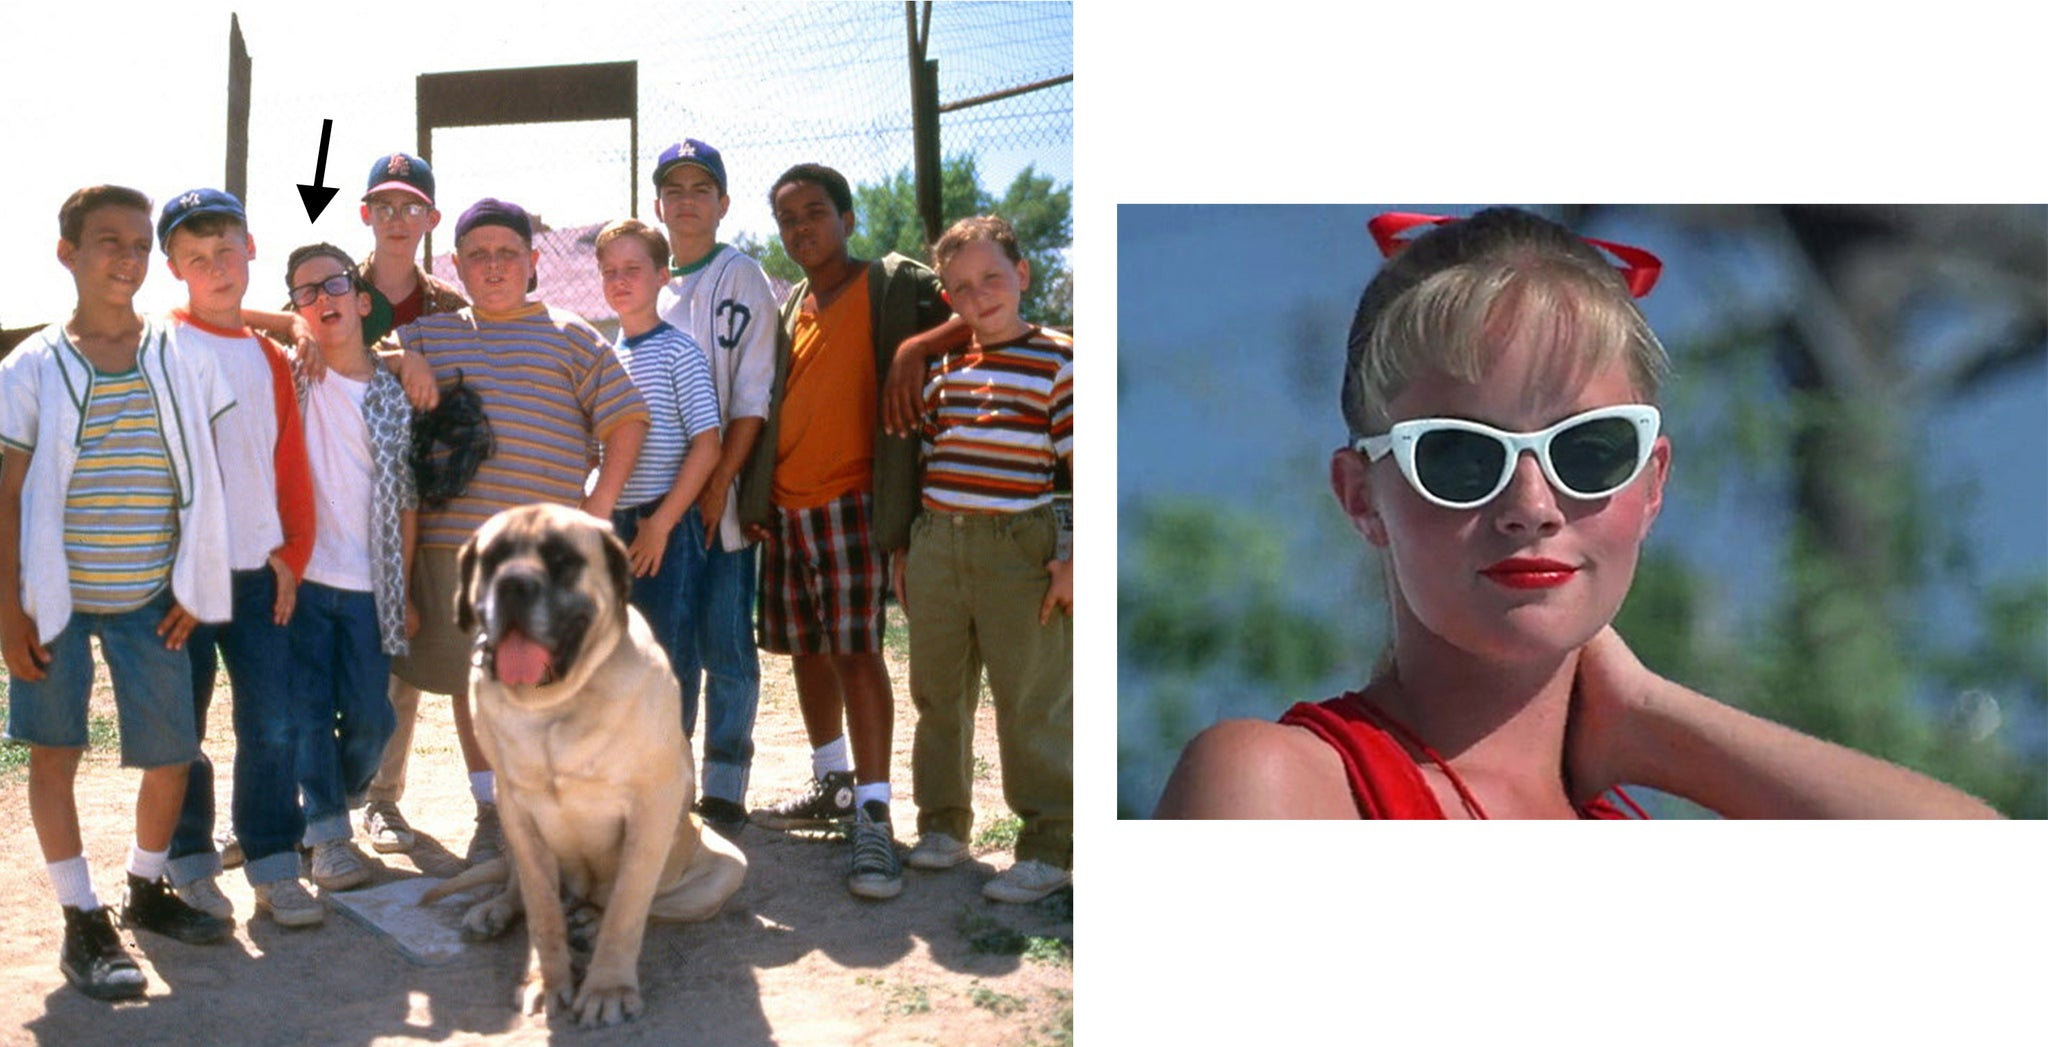 Wendy and Squints from The Sandlot are other easy last minute costumes that can be created using stuff you probably already have in your closet!  sc 1 st  Sunglass Spot & 15 Last Minute Halloween Costume Ideas! u2013 Sunglass Spot